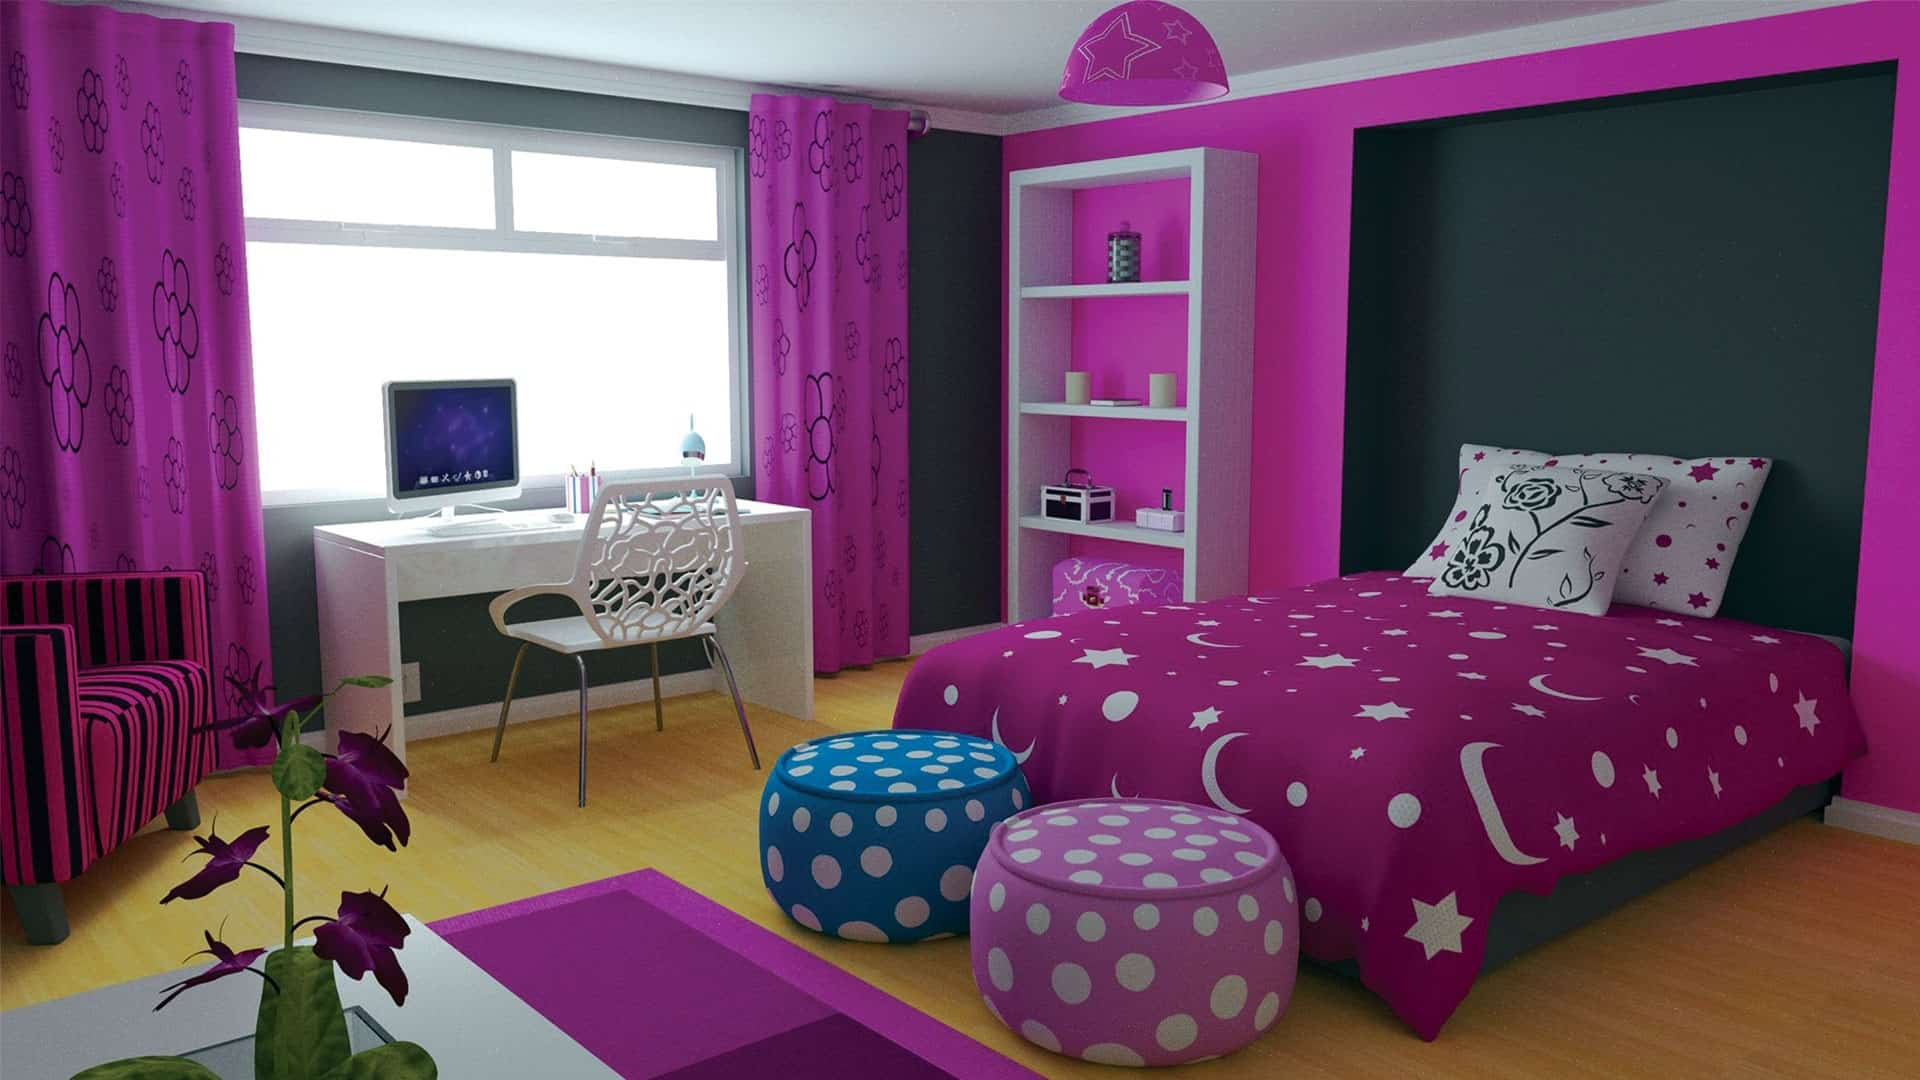 Home decor trends 2017 purple teen room - A teen room decor ...